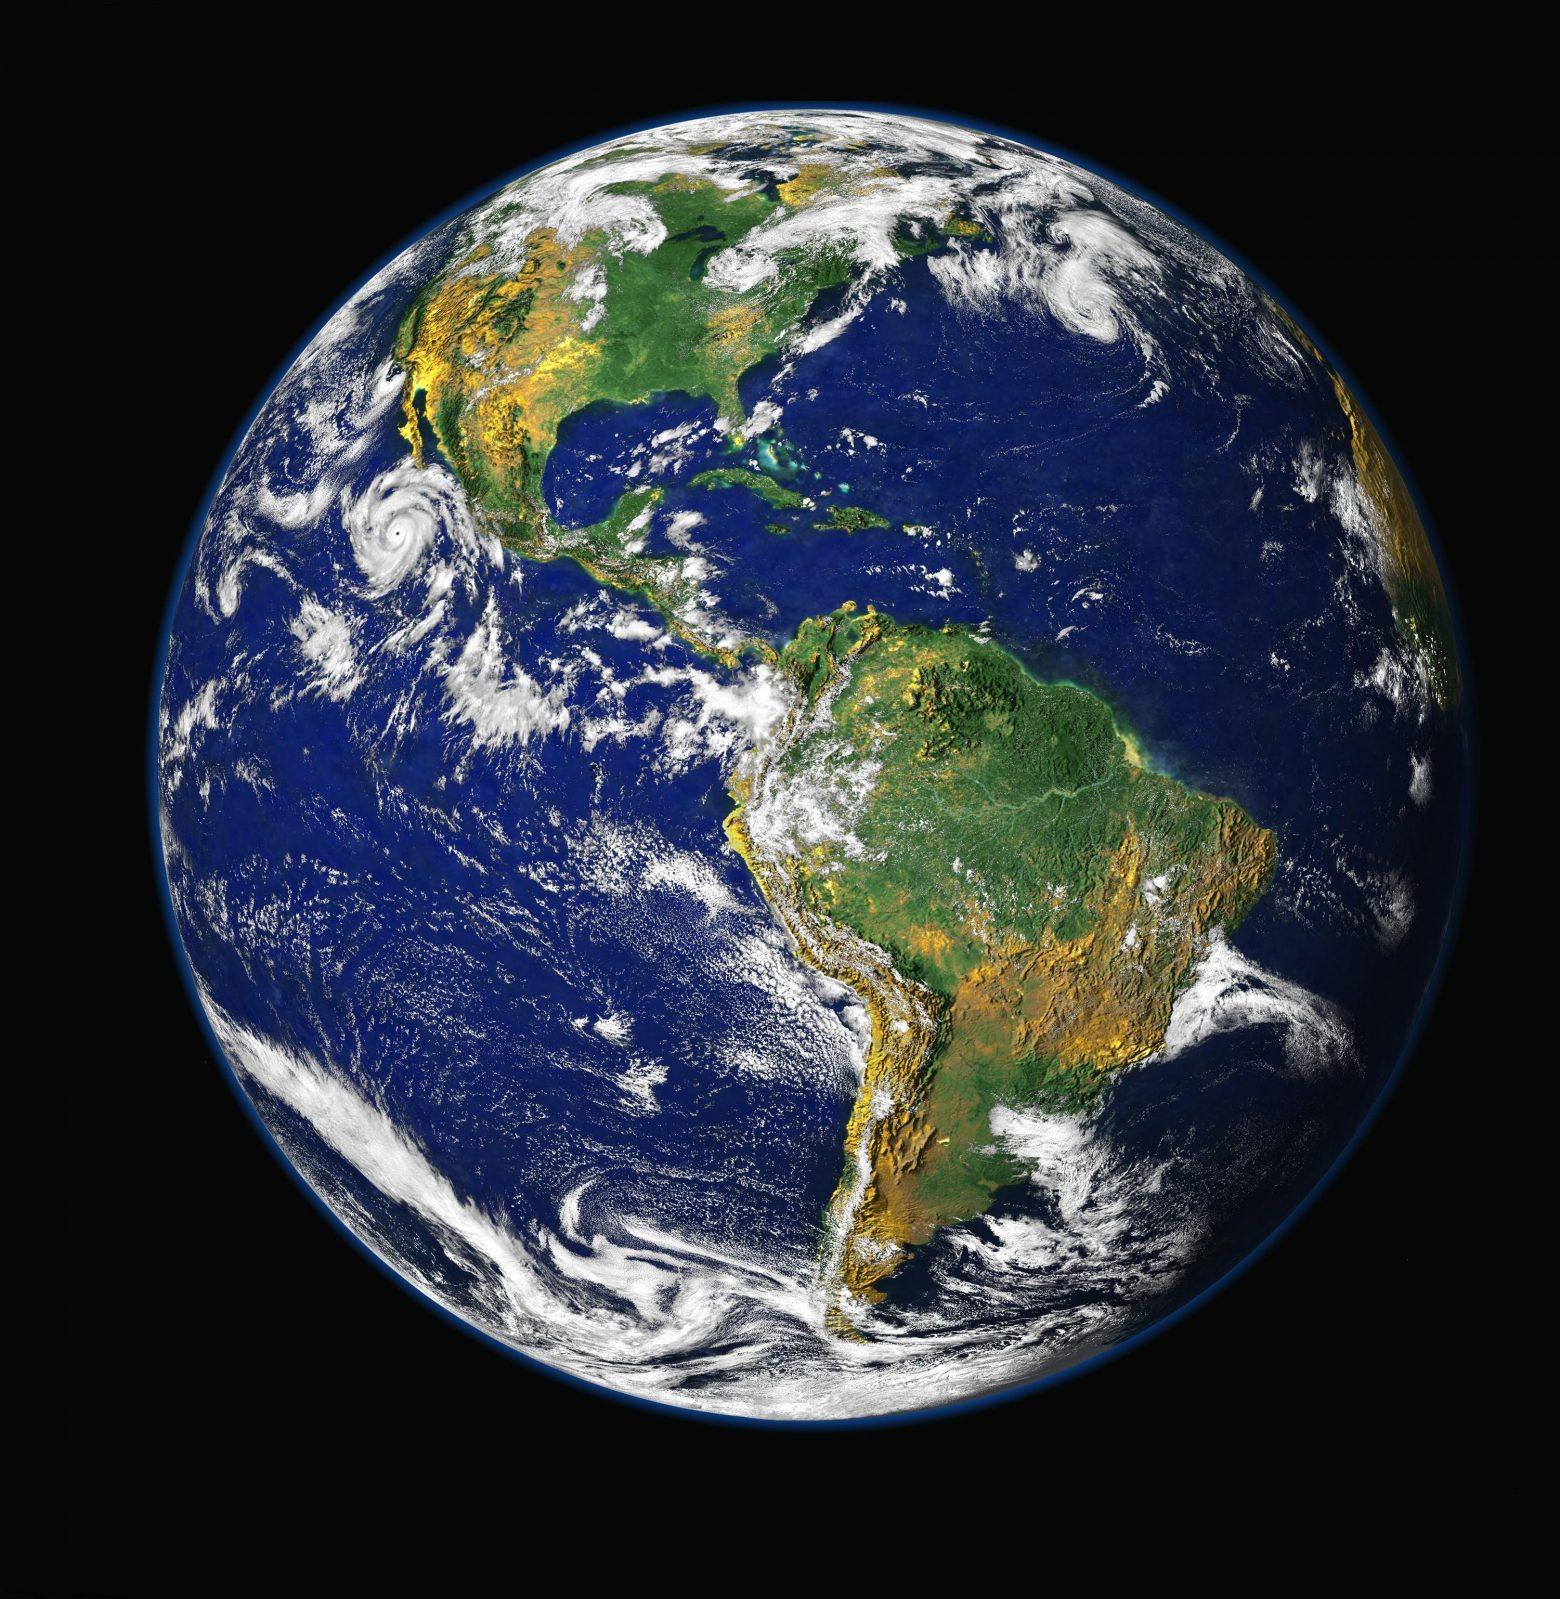 Spherical World Map.Ball Shaped Planet Map Universe Spherical Earth Photography